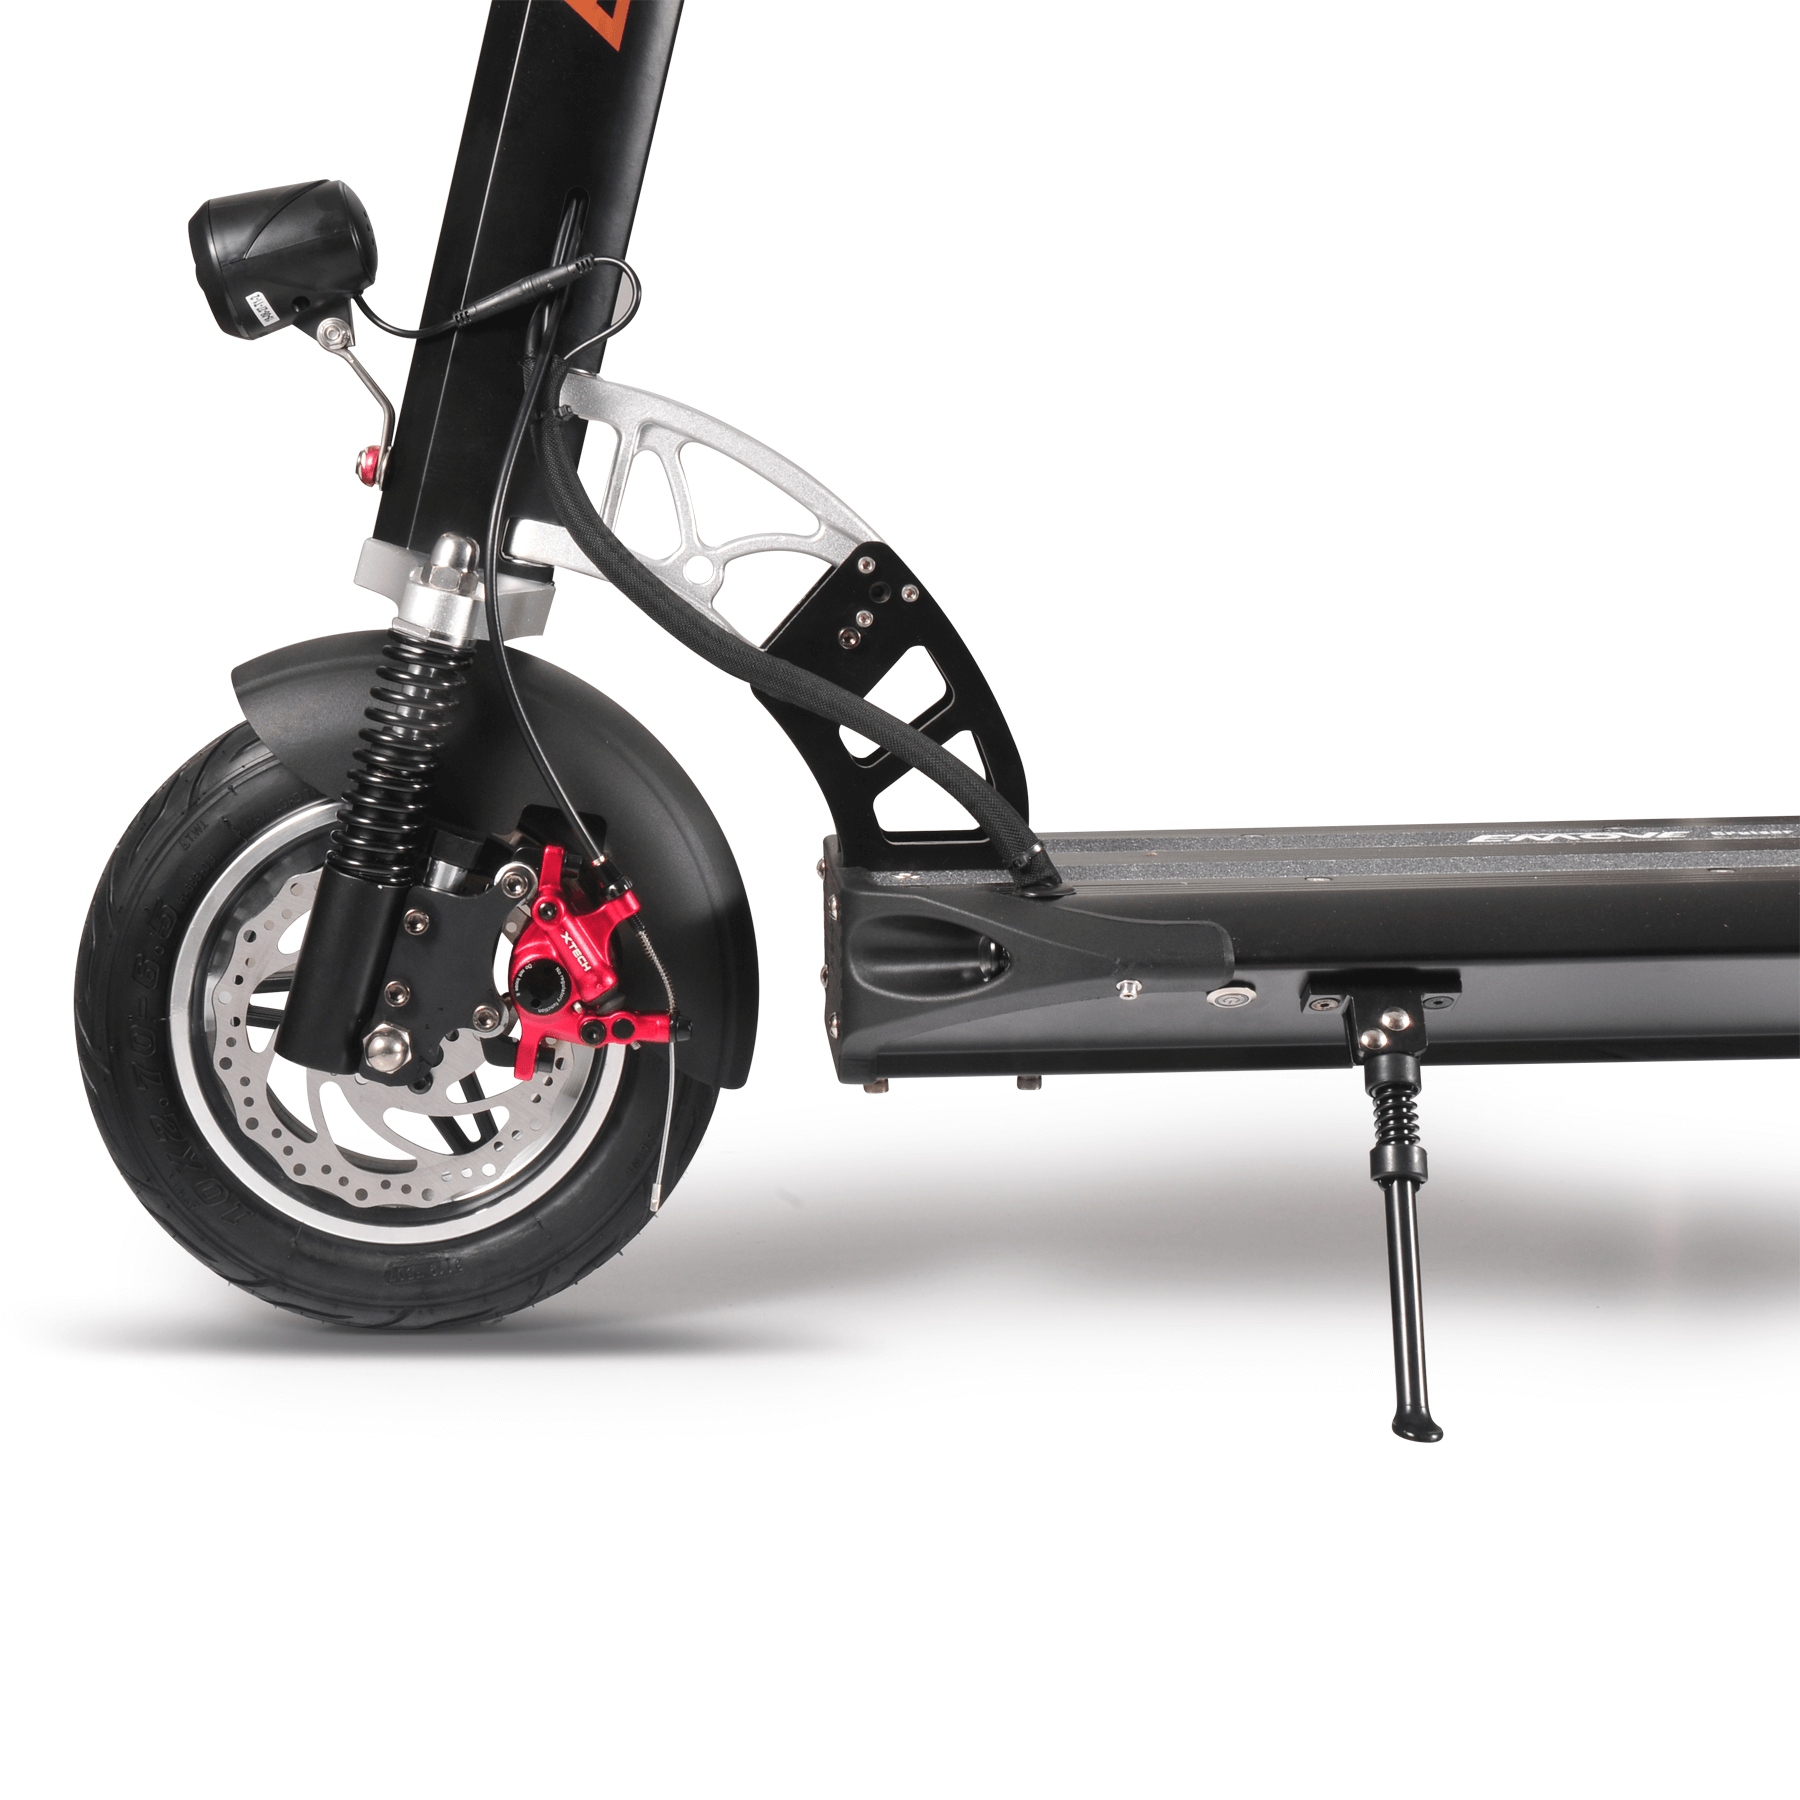 EMOVE Cruiser Black - Rear Wheel Side View with Hydraulic Brakes